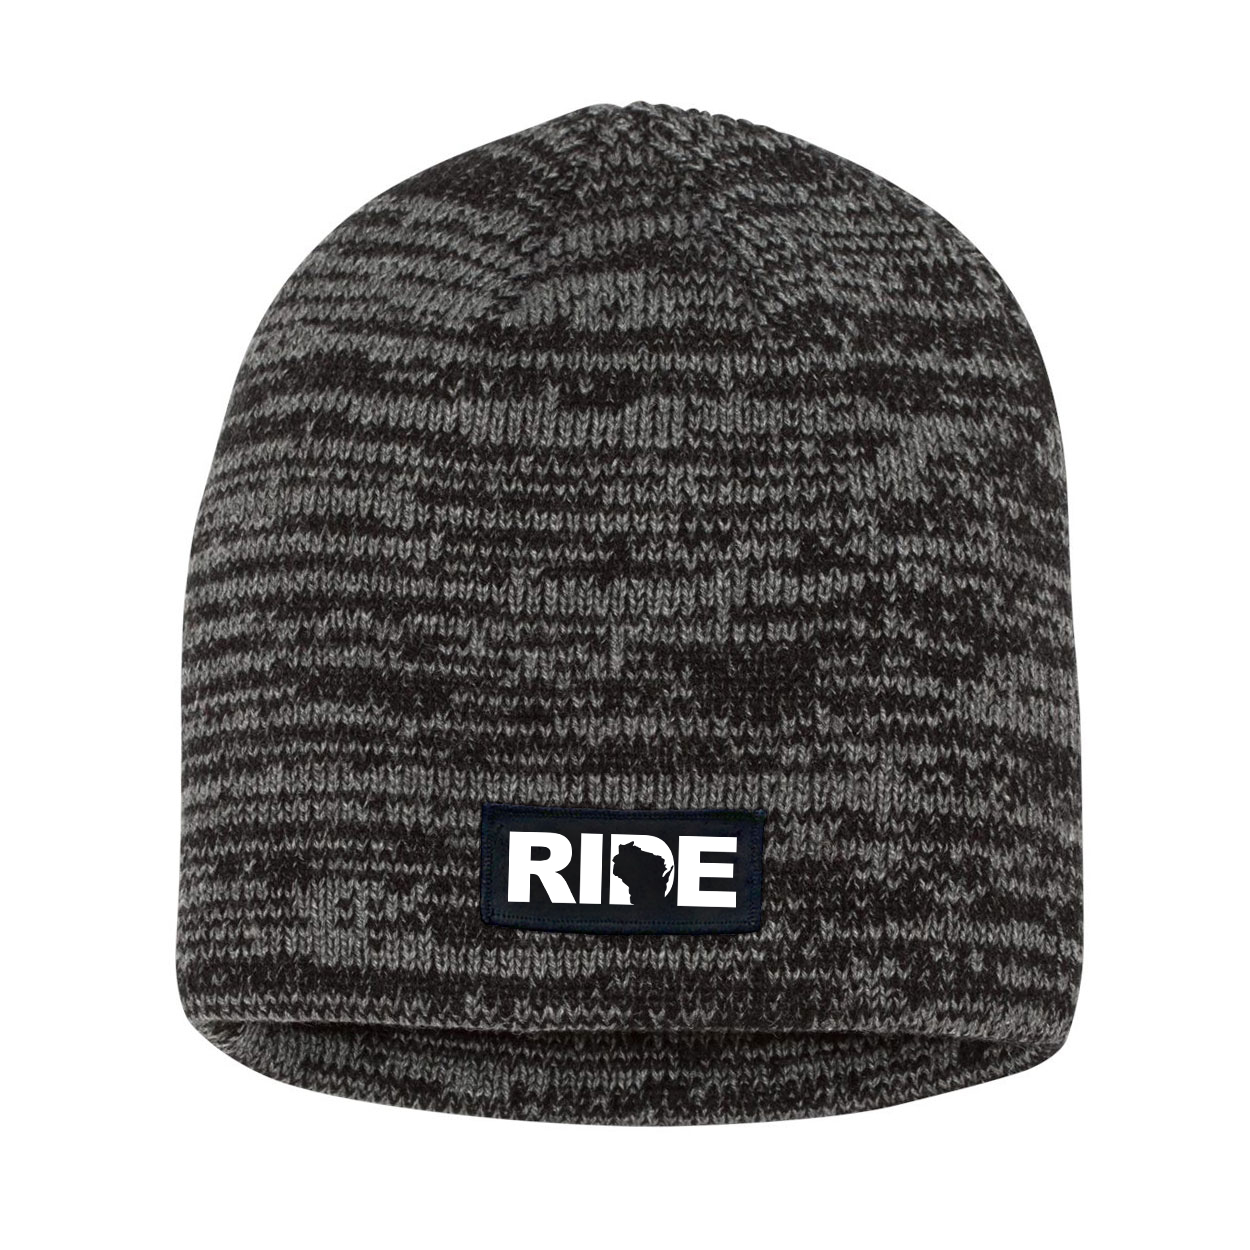 Ride Wisconsin Night Out Woven Patch Skully Marled Knit Beanie Black/Gray (White Logo)